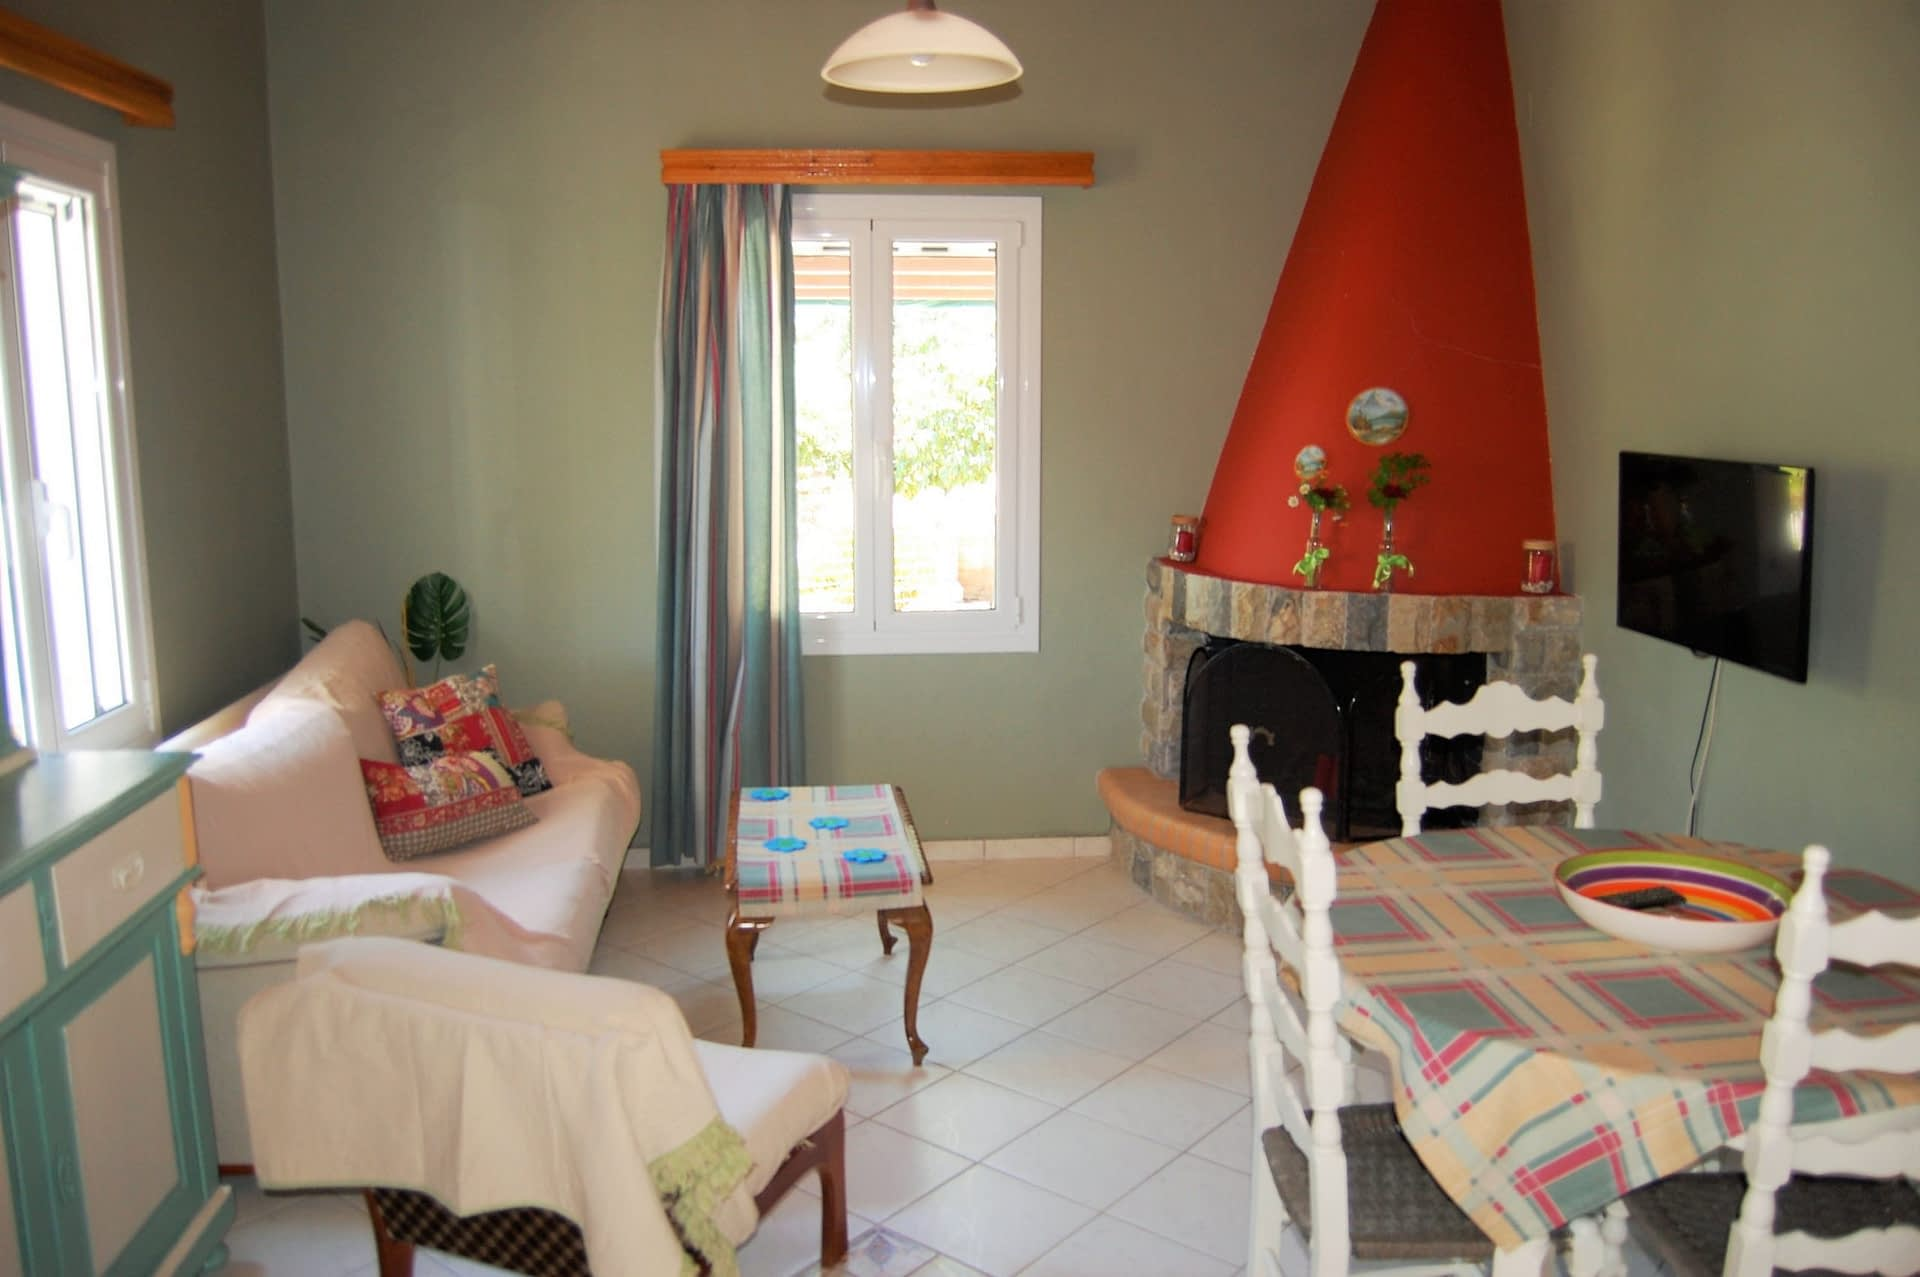 Interior space of rental property in Perachori Ithaca Greece